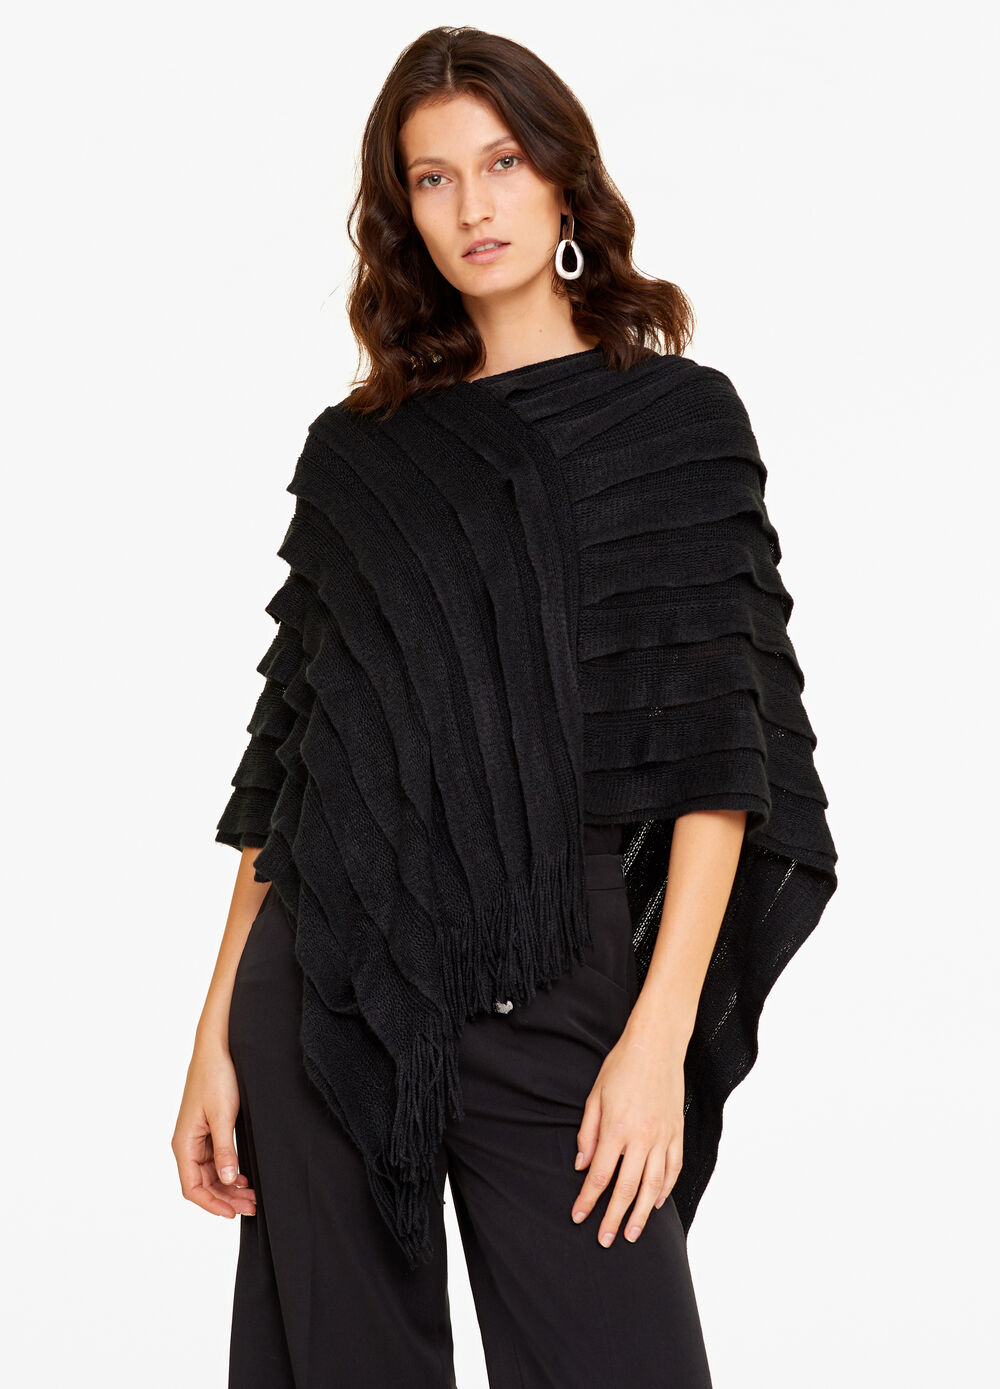 Poncho with ruffles